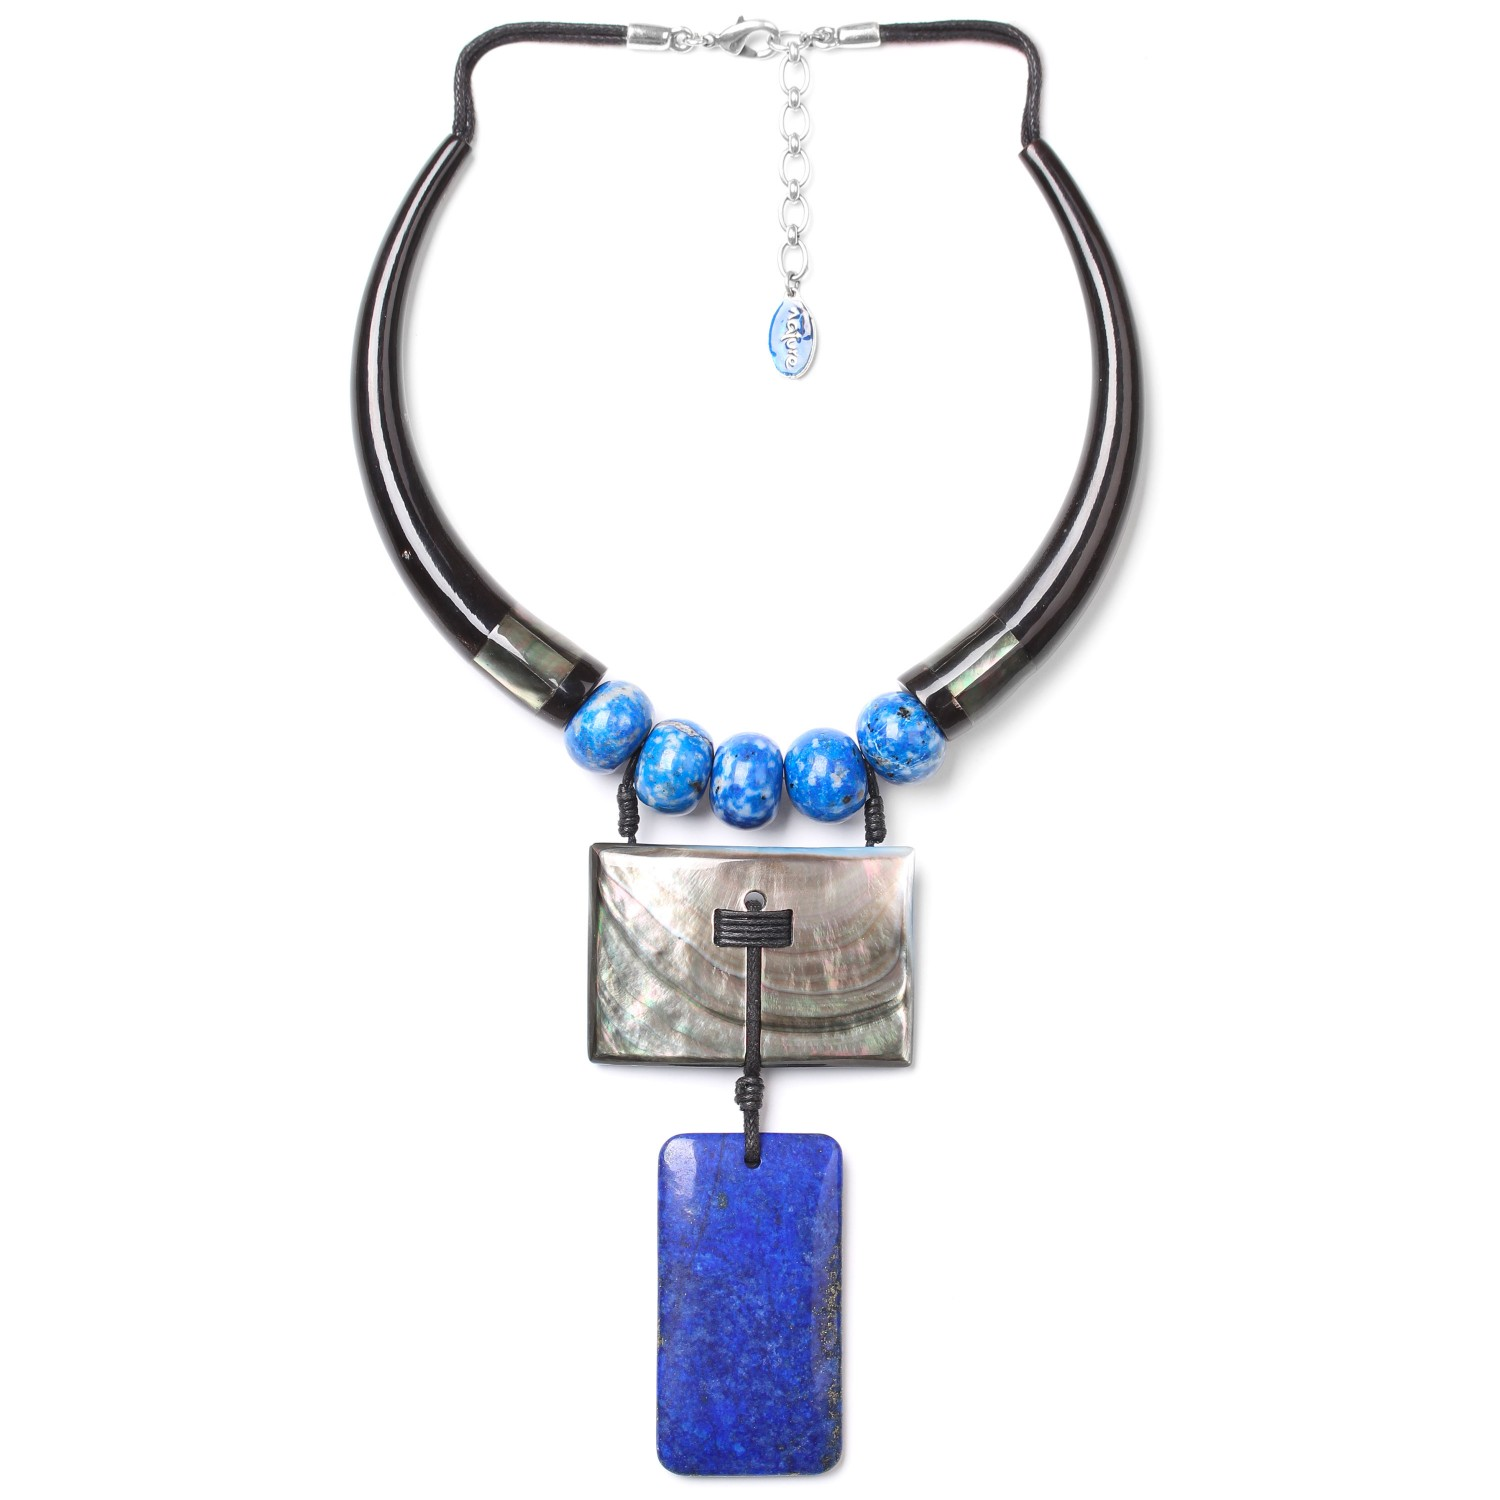 DEEP BLUE LE collier